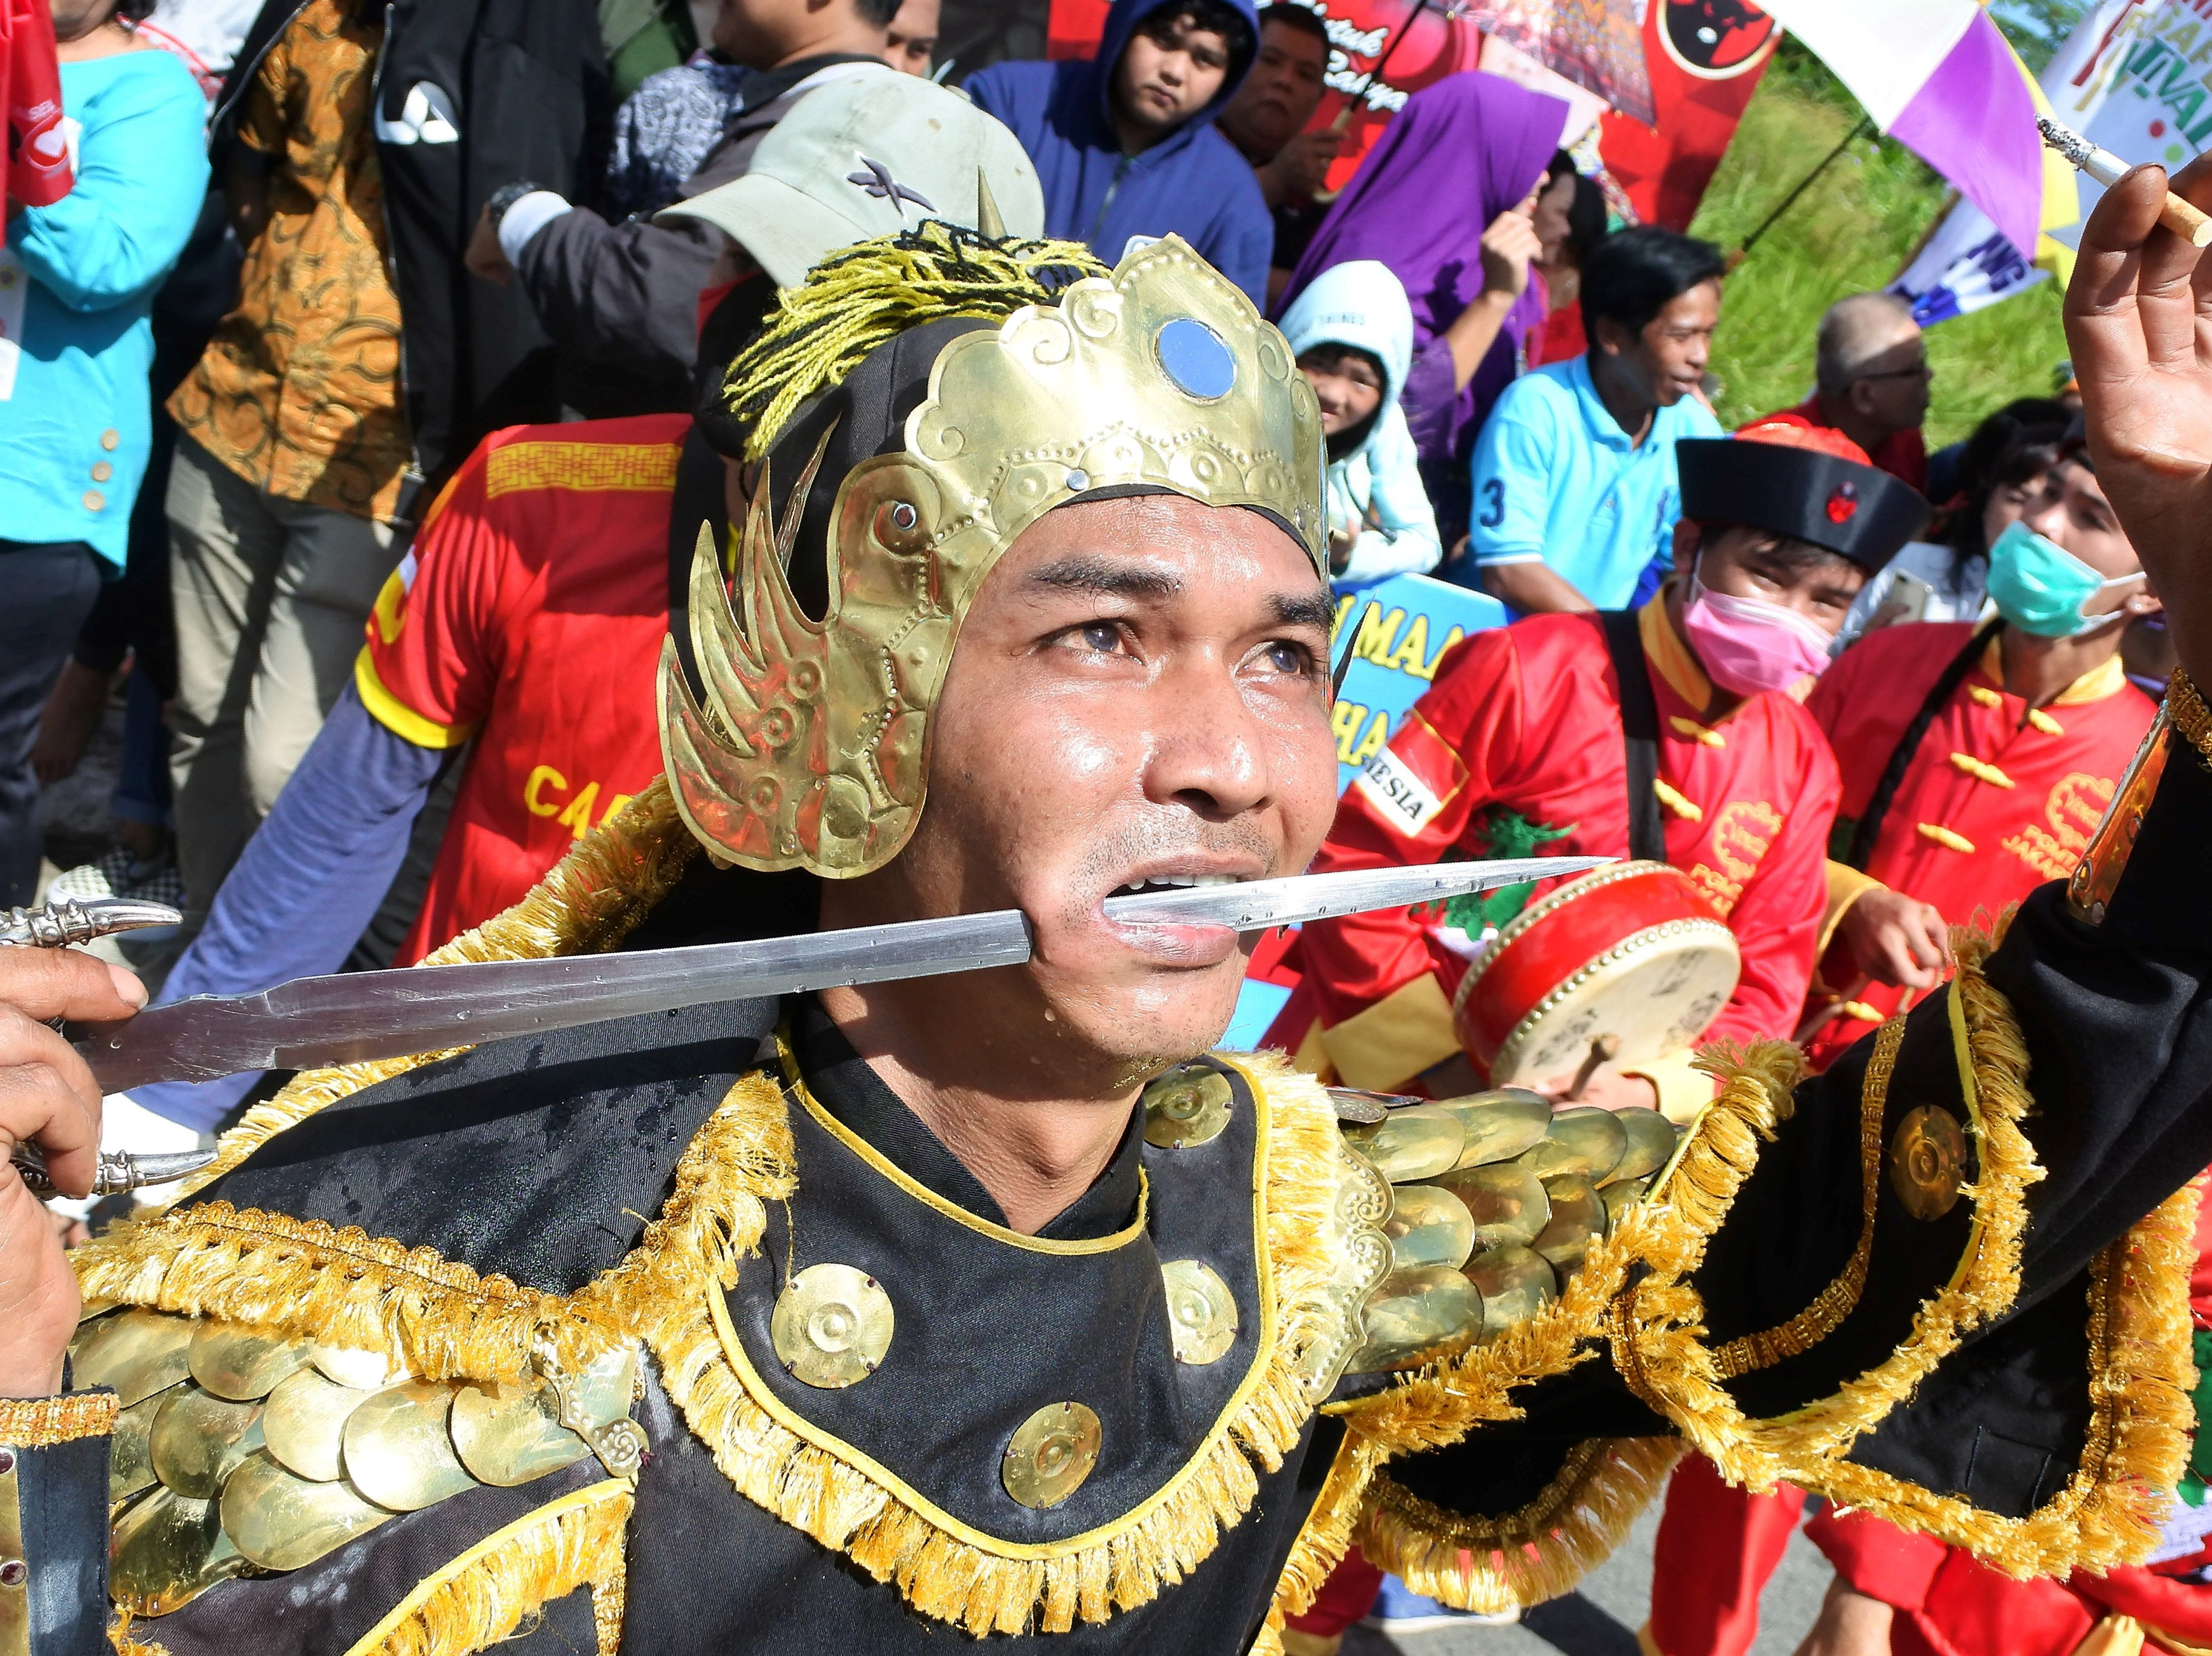 An Indonesian man participates in a parade with a metal sword piercing through his cheek during the Cap Go Meh Festival in Singkawang, West Kalimantan on February 19, 2019. - Chinese Indonesians celebrated the Cap Go Meh festival to mark the end of Lunar New Year festival.